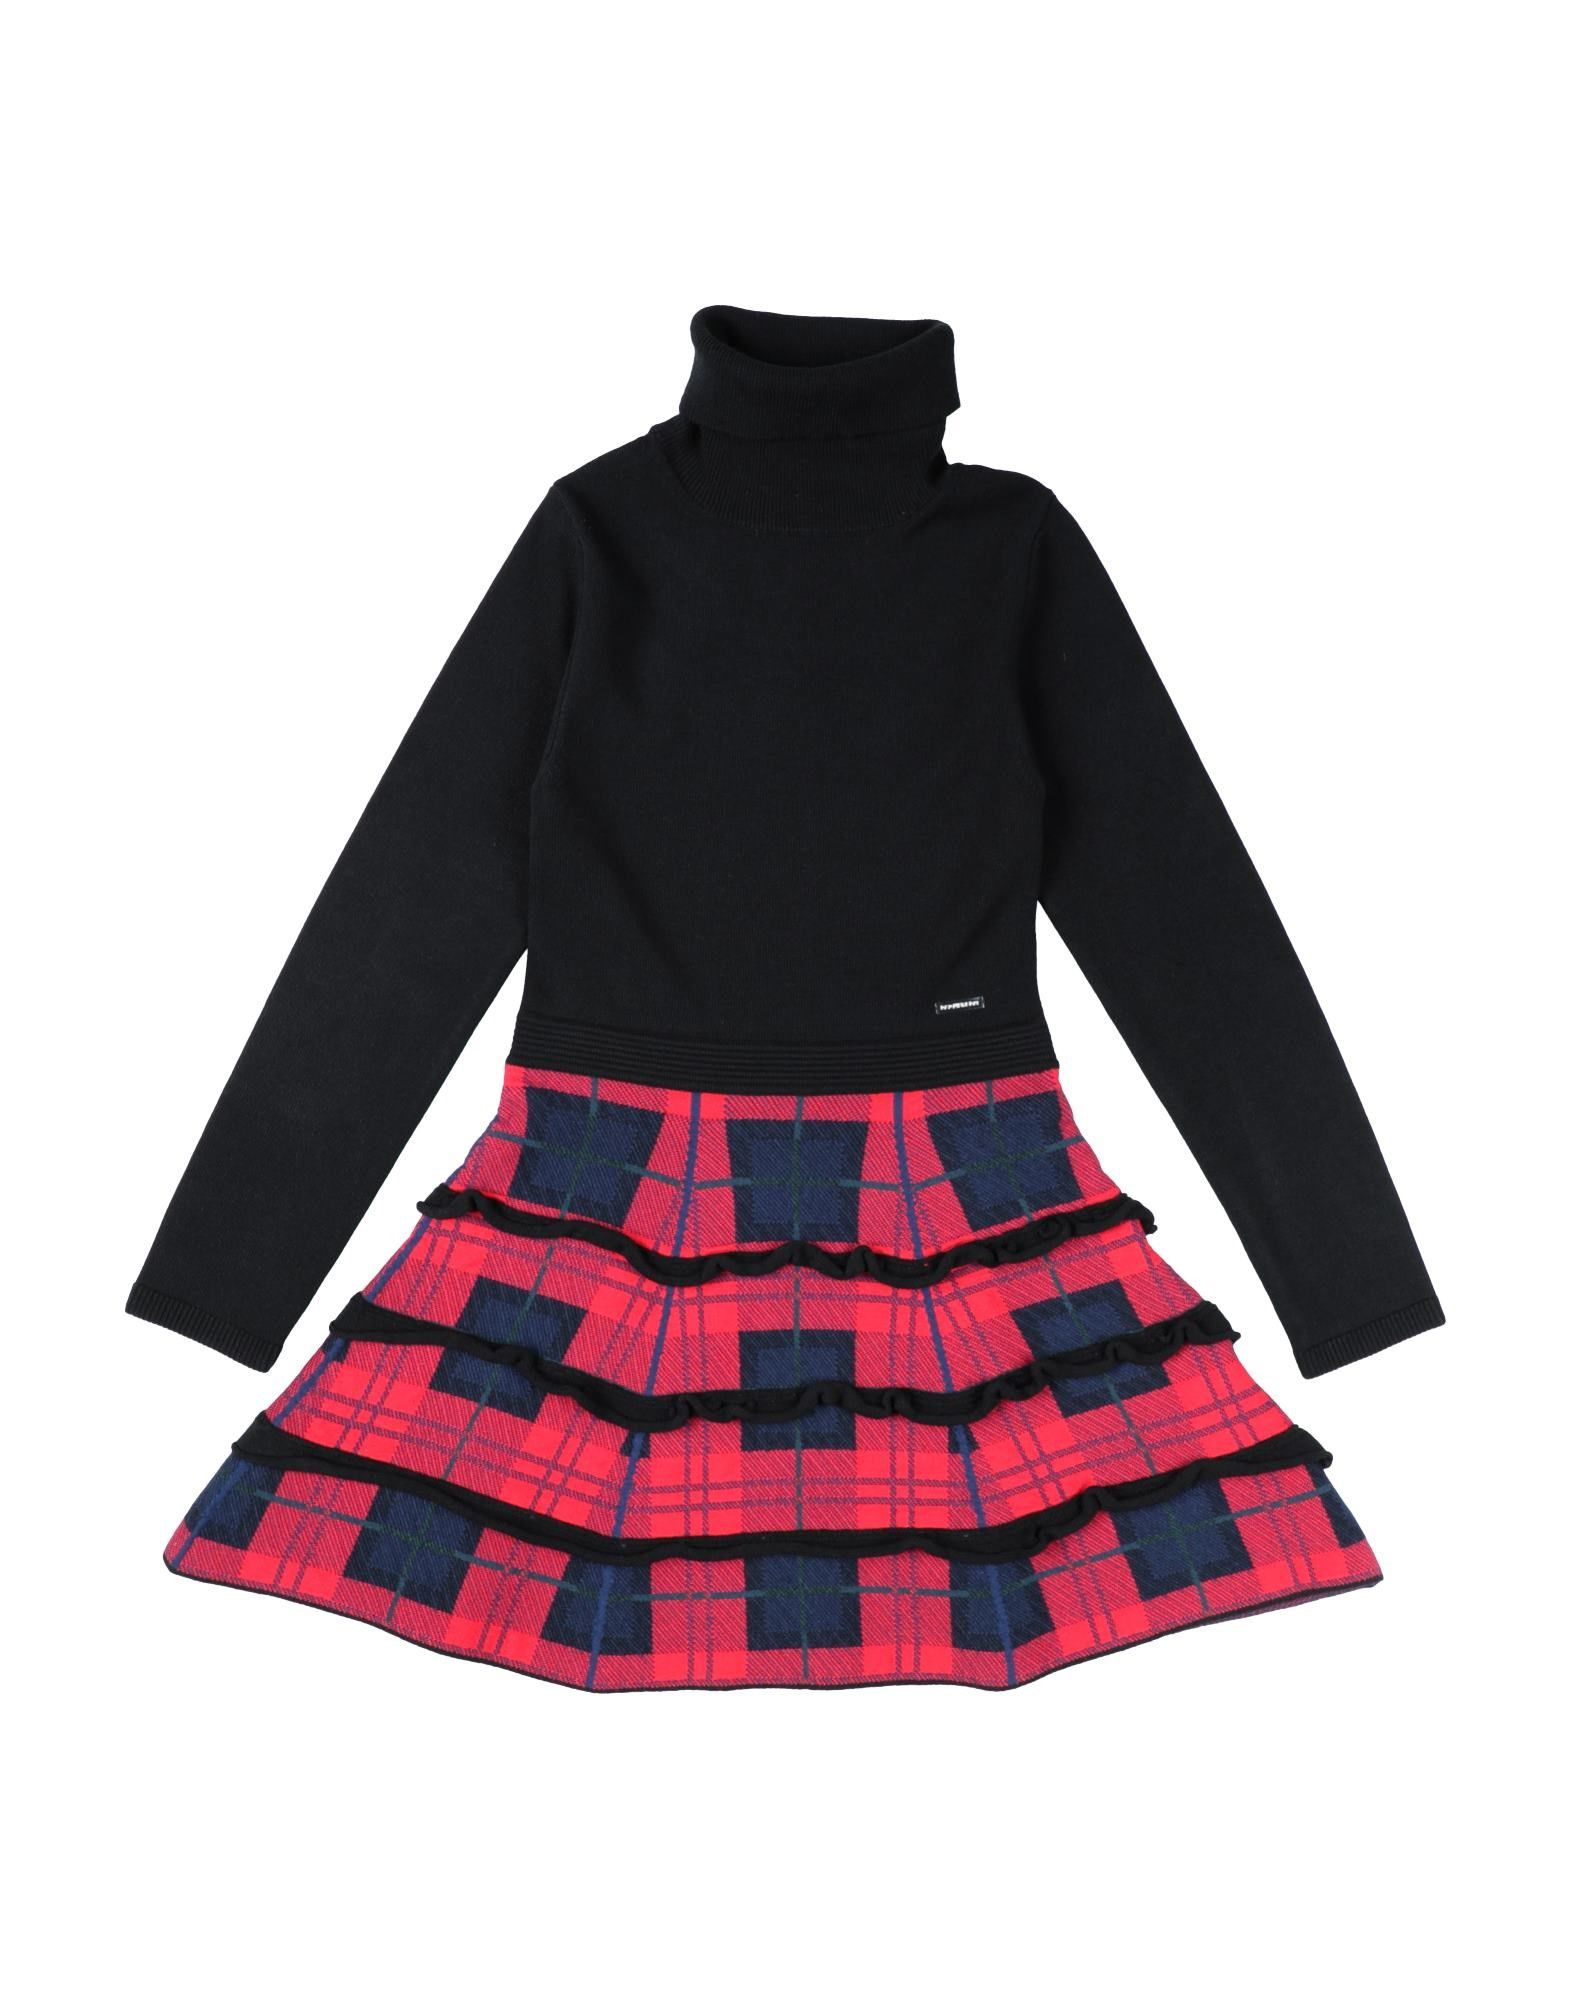 DSQUARED2 Dresses. knitted, tartan plaid, lightweight knit, turtleneck, long sleeves, no pockets, unlined, logo, hand wash, dry cleanable, iron at 110degree c max, do not bleach, do not tumble dry, stretch, small sized. 68% Rayon, 29% Acrylic, 3% Elastane